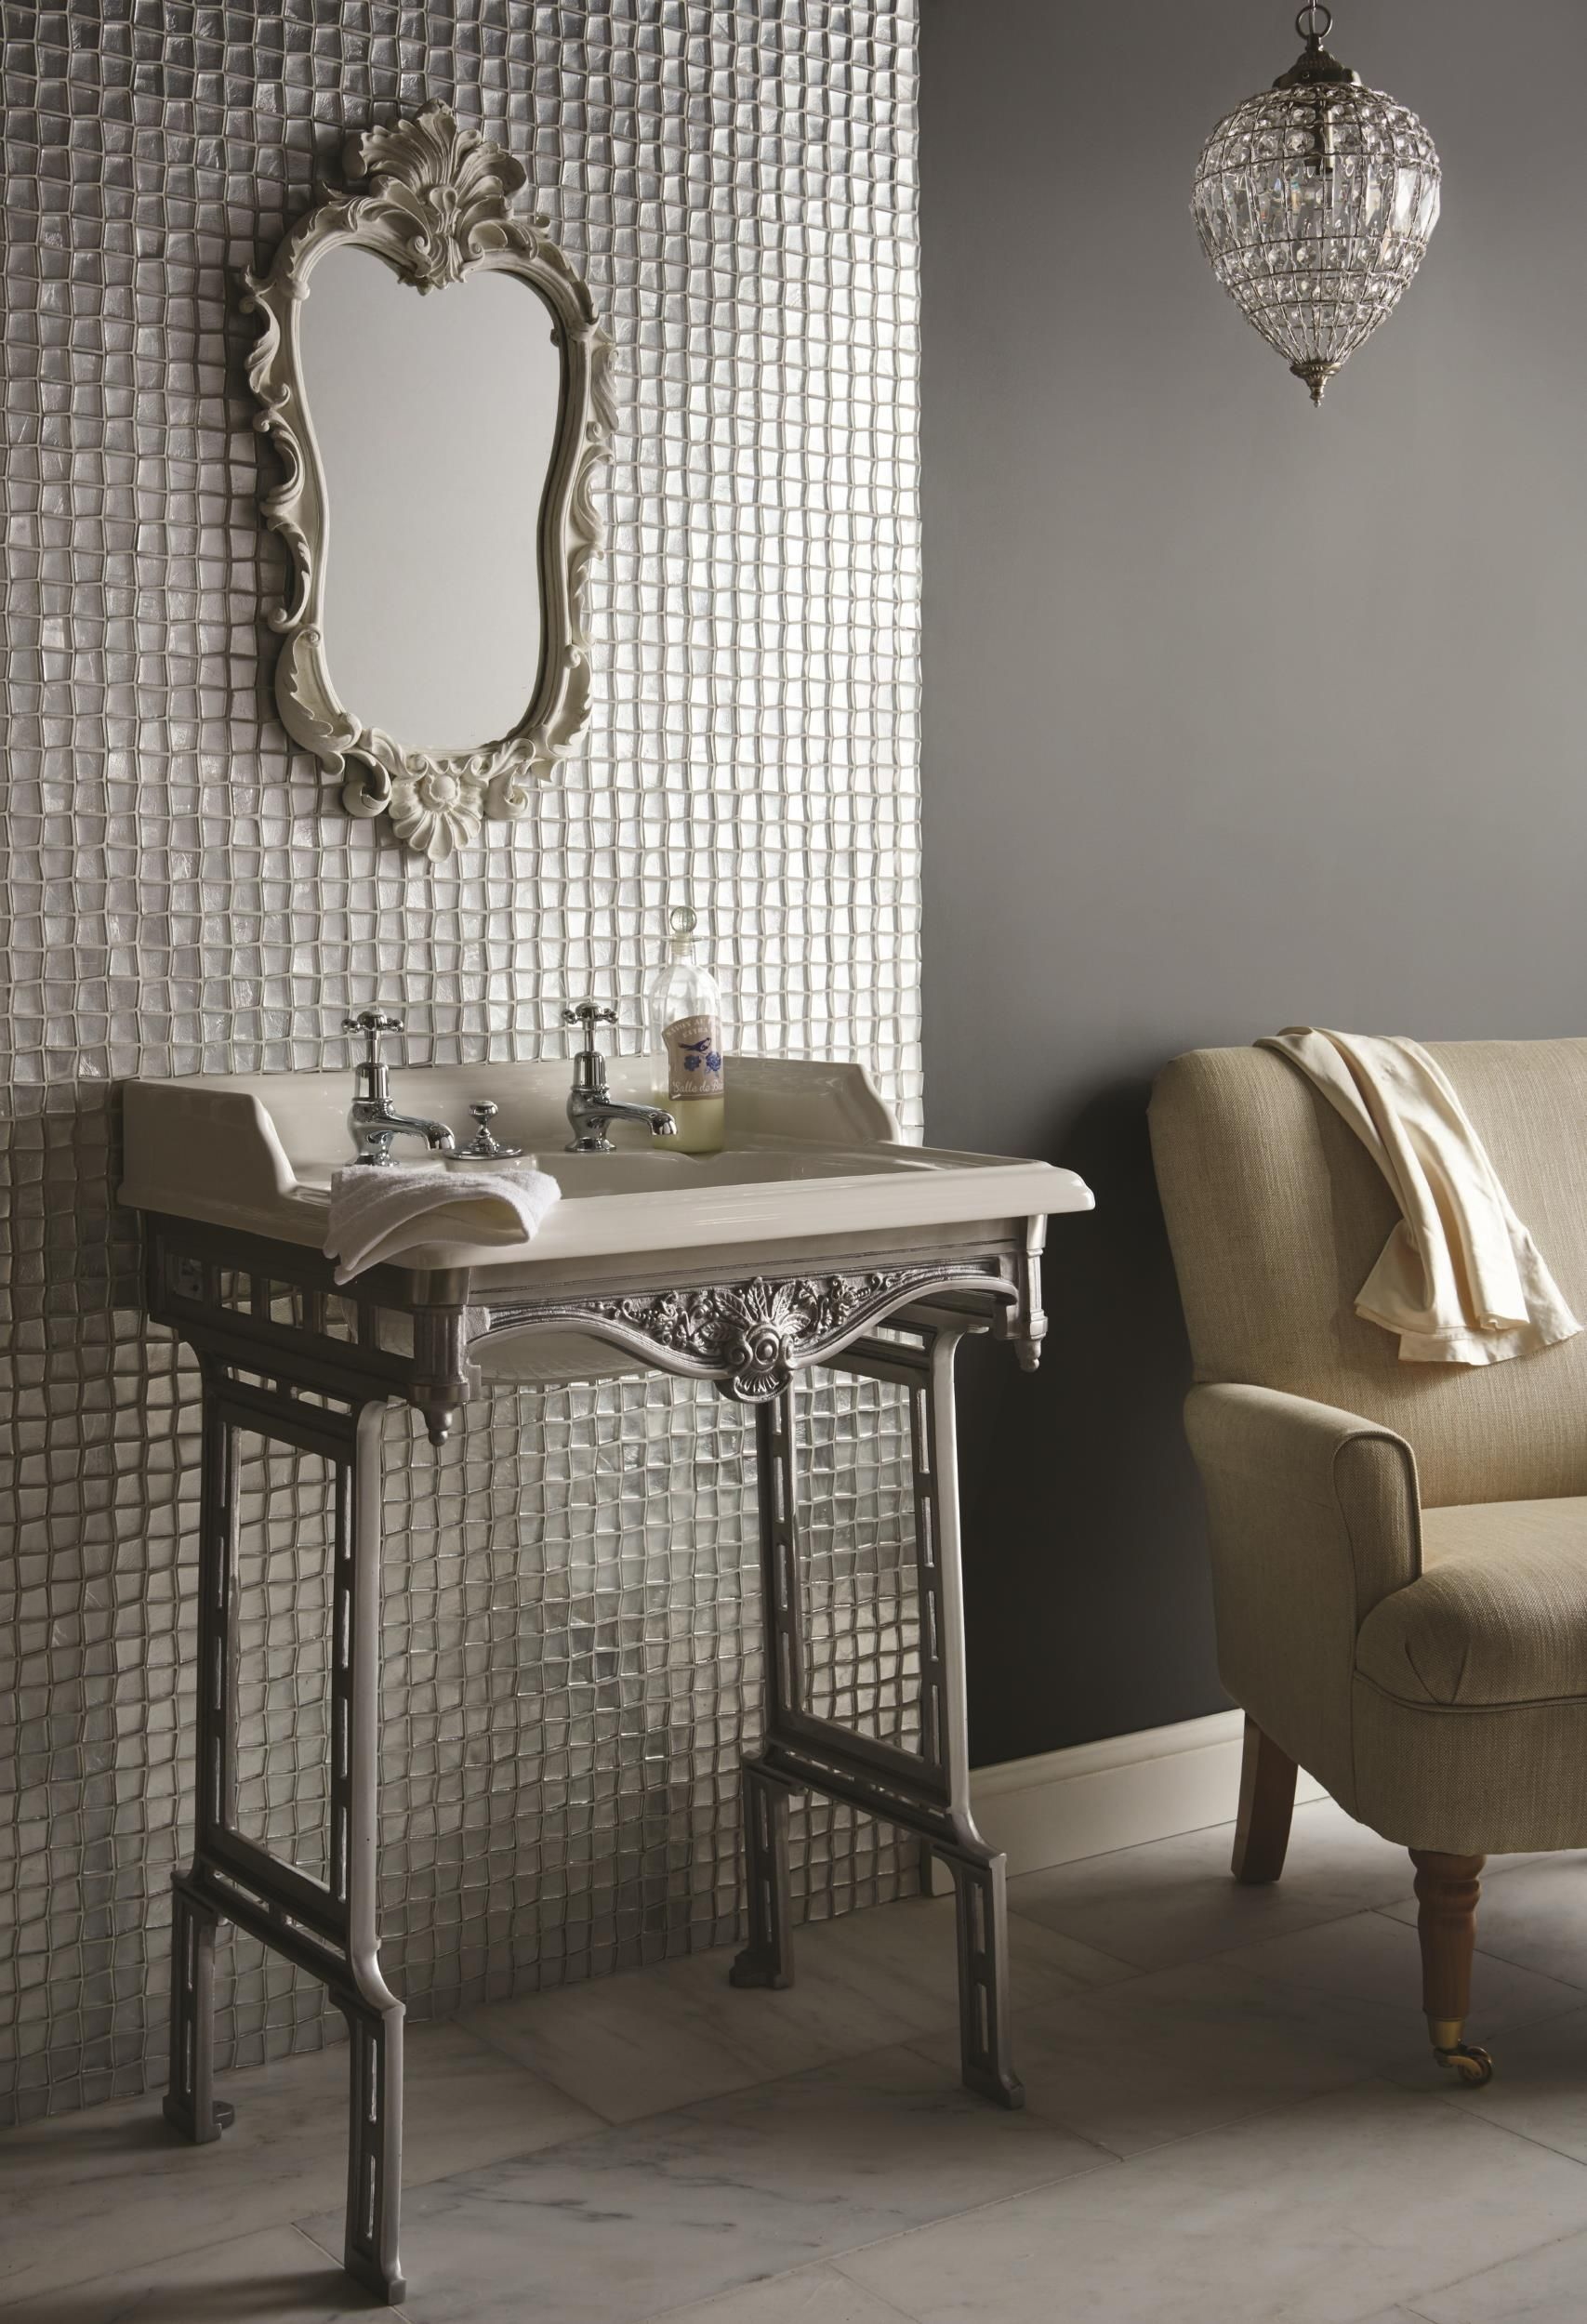 ares metallic glass mosaics feature a unique irregular shape which is a great twist on square